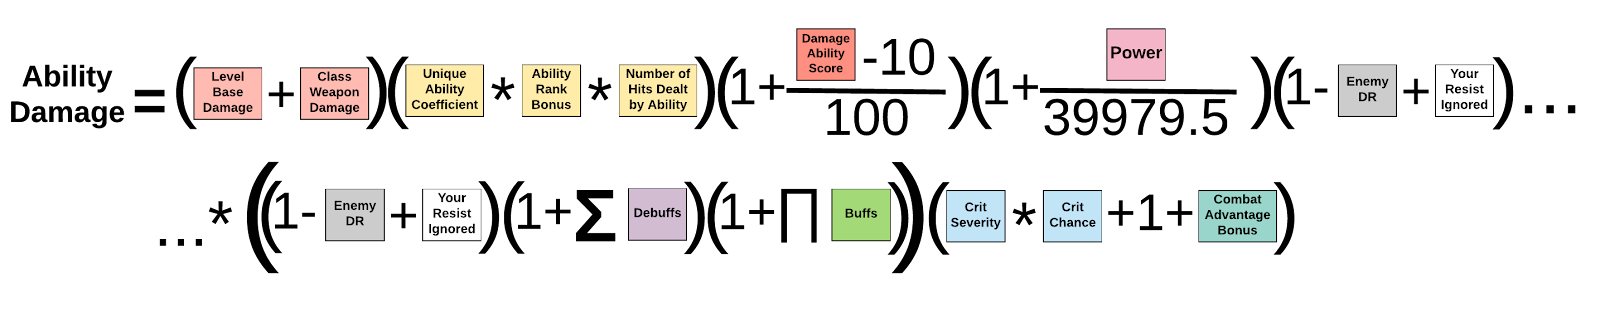 Ability Damage Increase Formula - Page 1.png